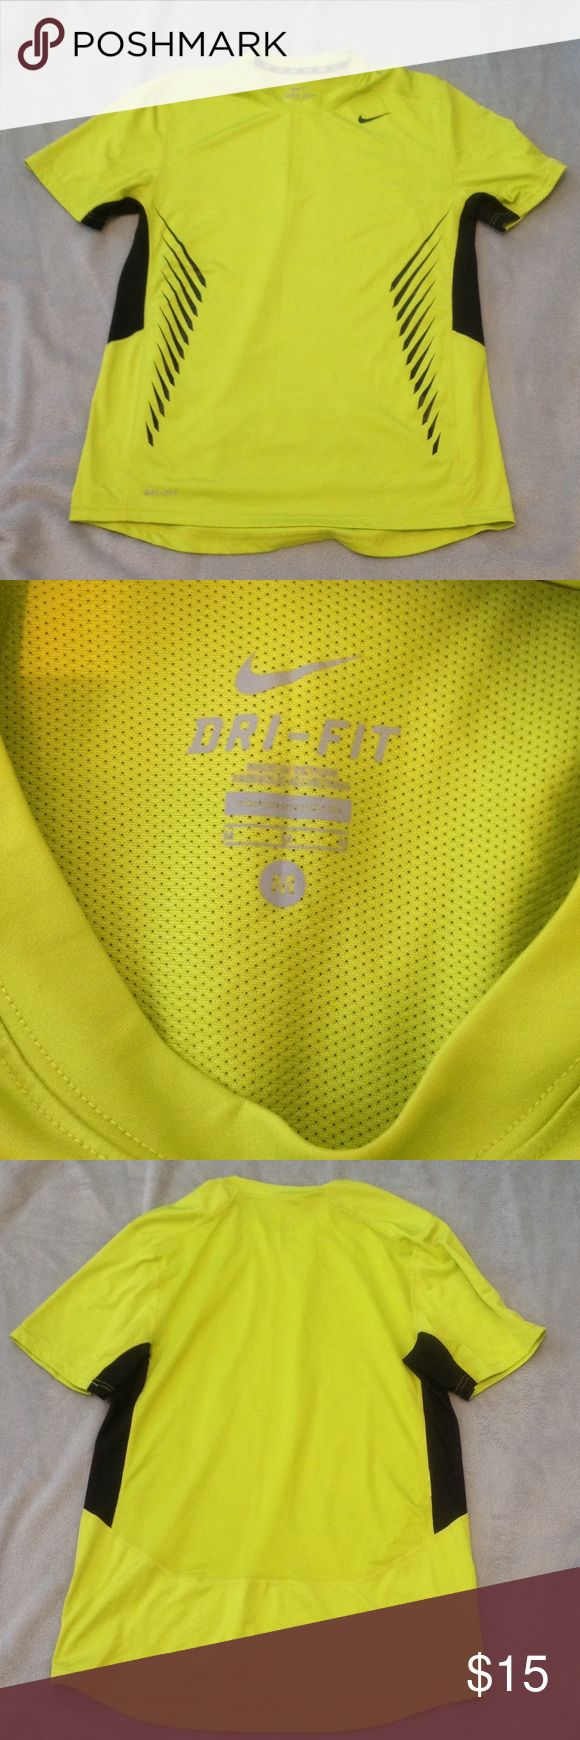 Nike Dri fit Nike Dri fit bright yellow/green. Like a lemon lime color Size medium. Bundle with another M dri fit shirt in my closet for better deal! Nike Shirts Tees - Short Sleeve